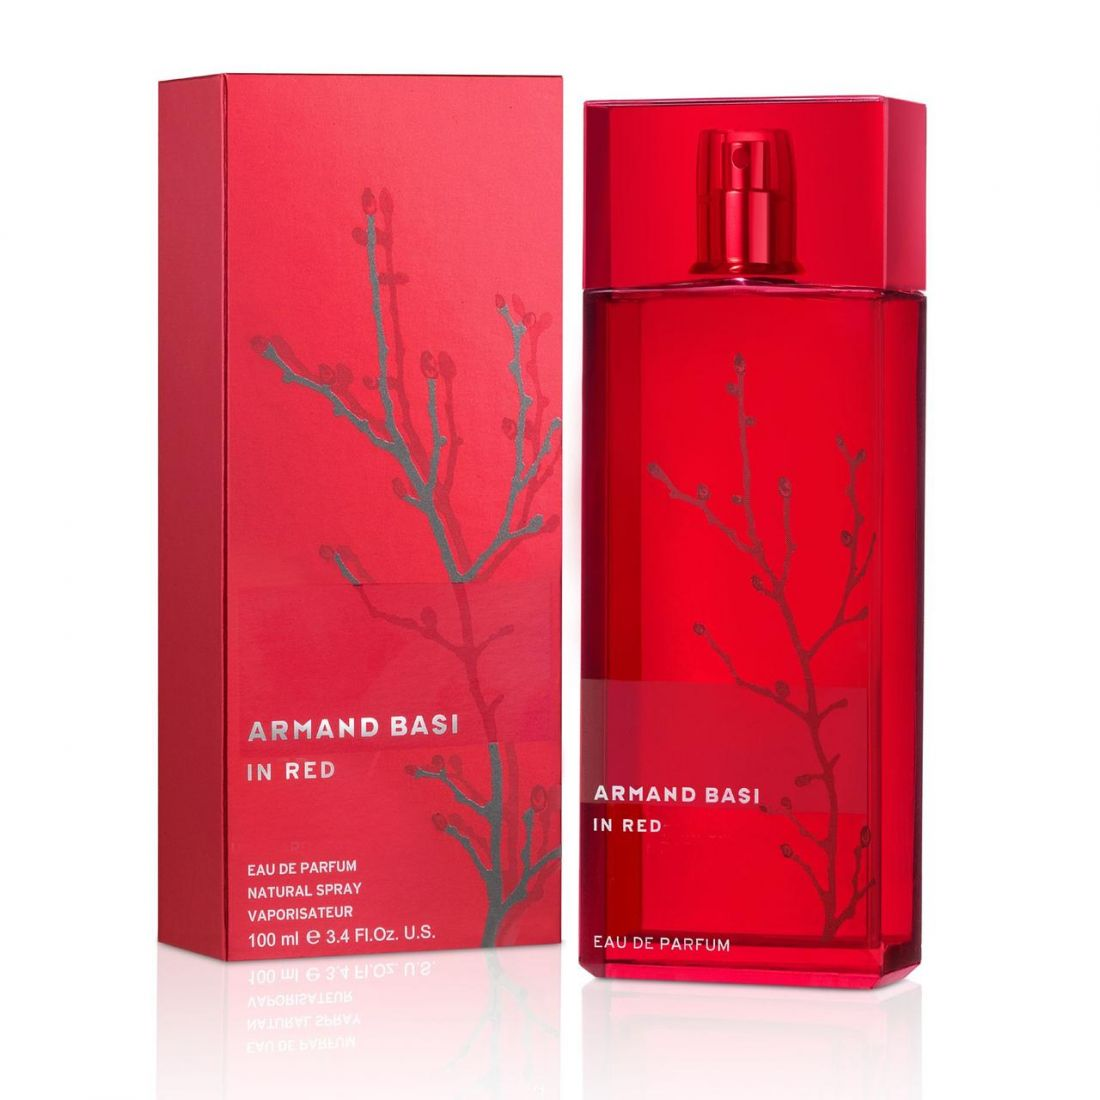 ARMAND BASI In Red edp 100 ml